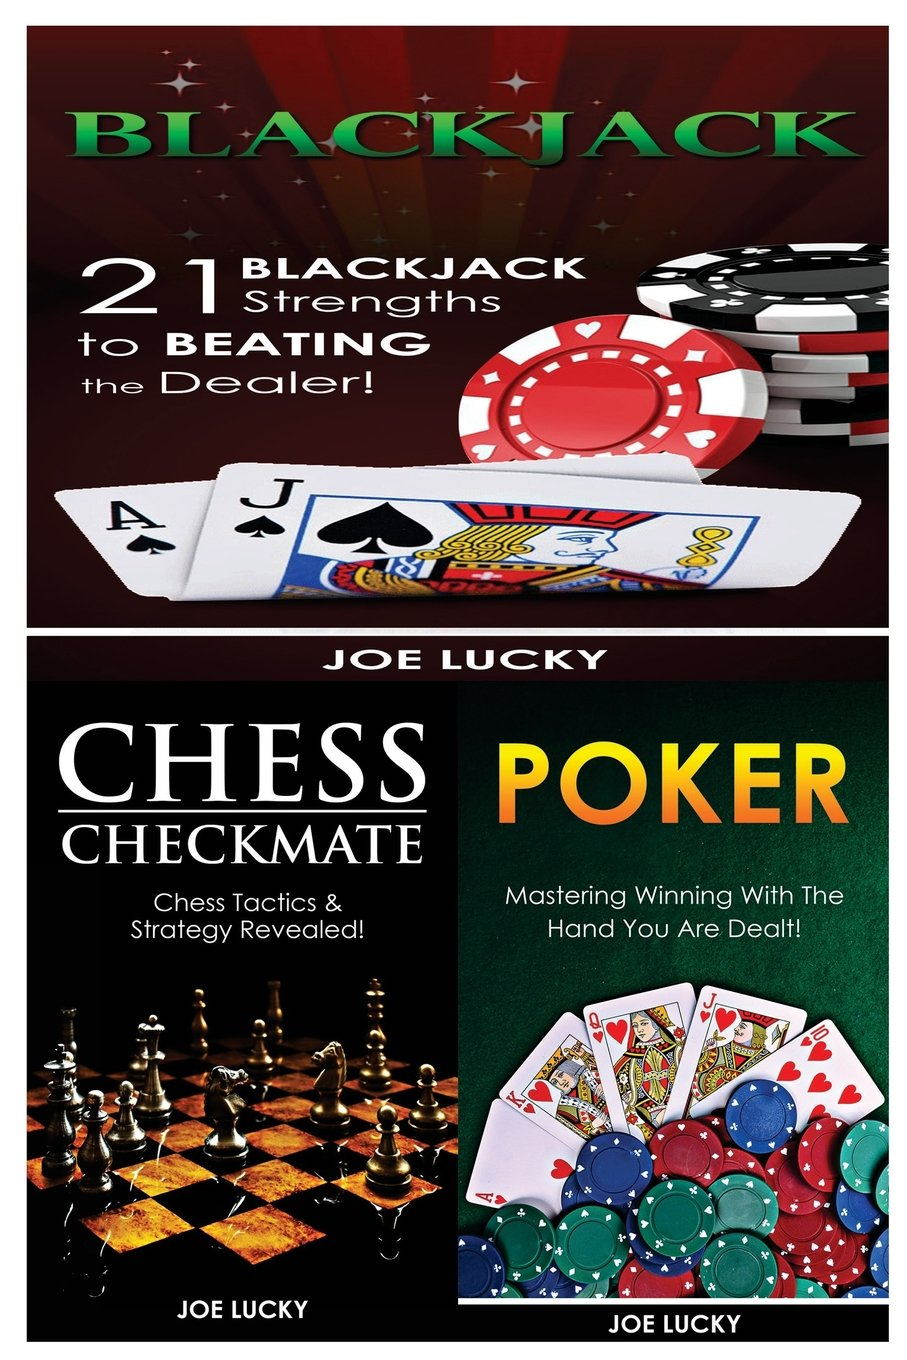 Blackjack & Chess Checkmate & Poker: 21 Blackjack Strengths to Beating the Dealer! & Chess Tactics & Strategy Revealed! & Mastering Winning With The Hand You Are Dealt! ebook